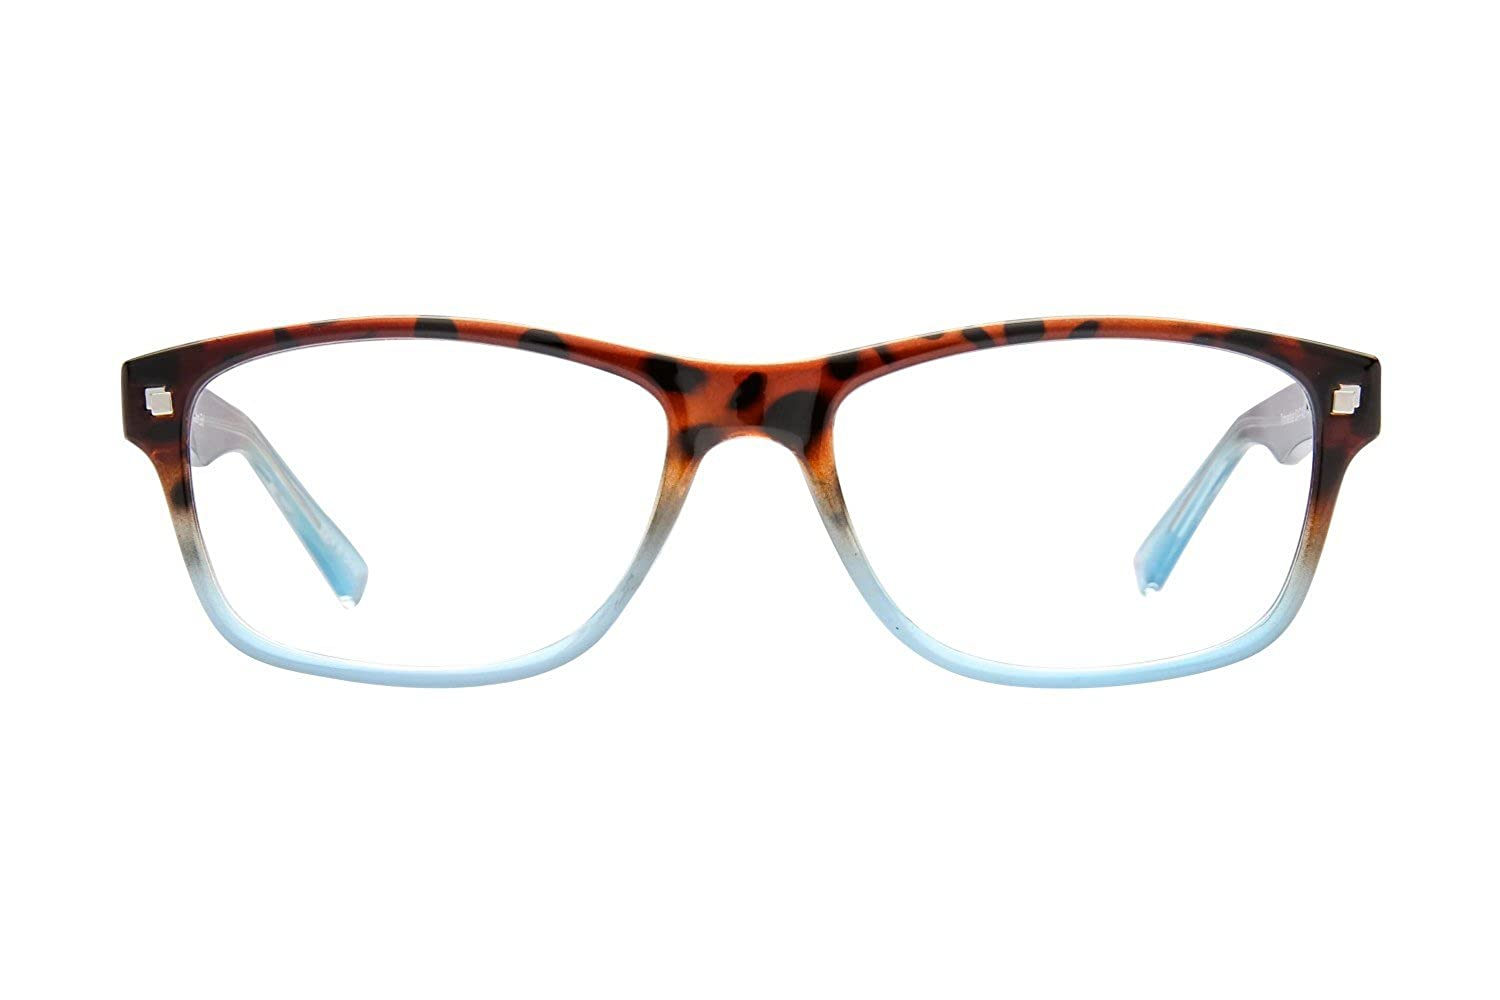 cf83cf1d4589 Lunettos Melissa Womens Eyeglass Frames - Tortoise Blue at Amazon Women s  Clothing store